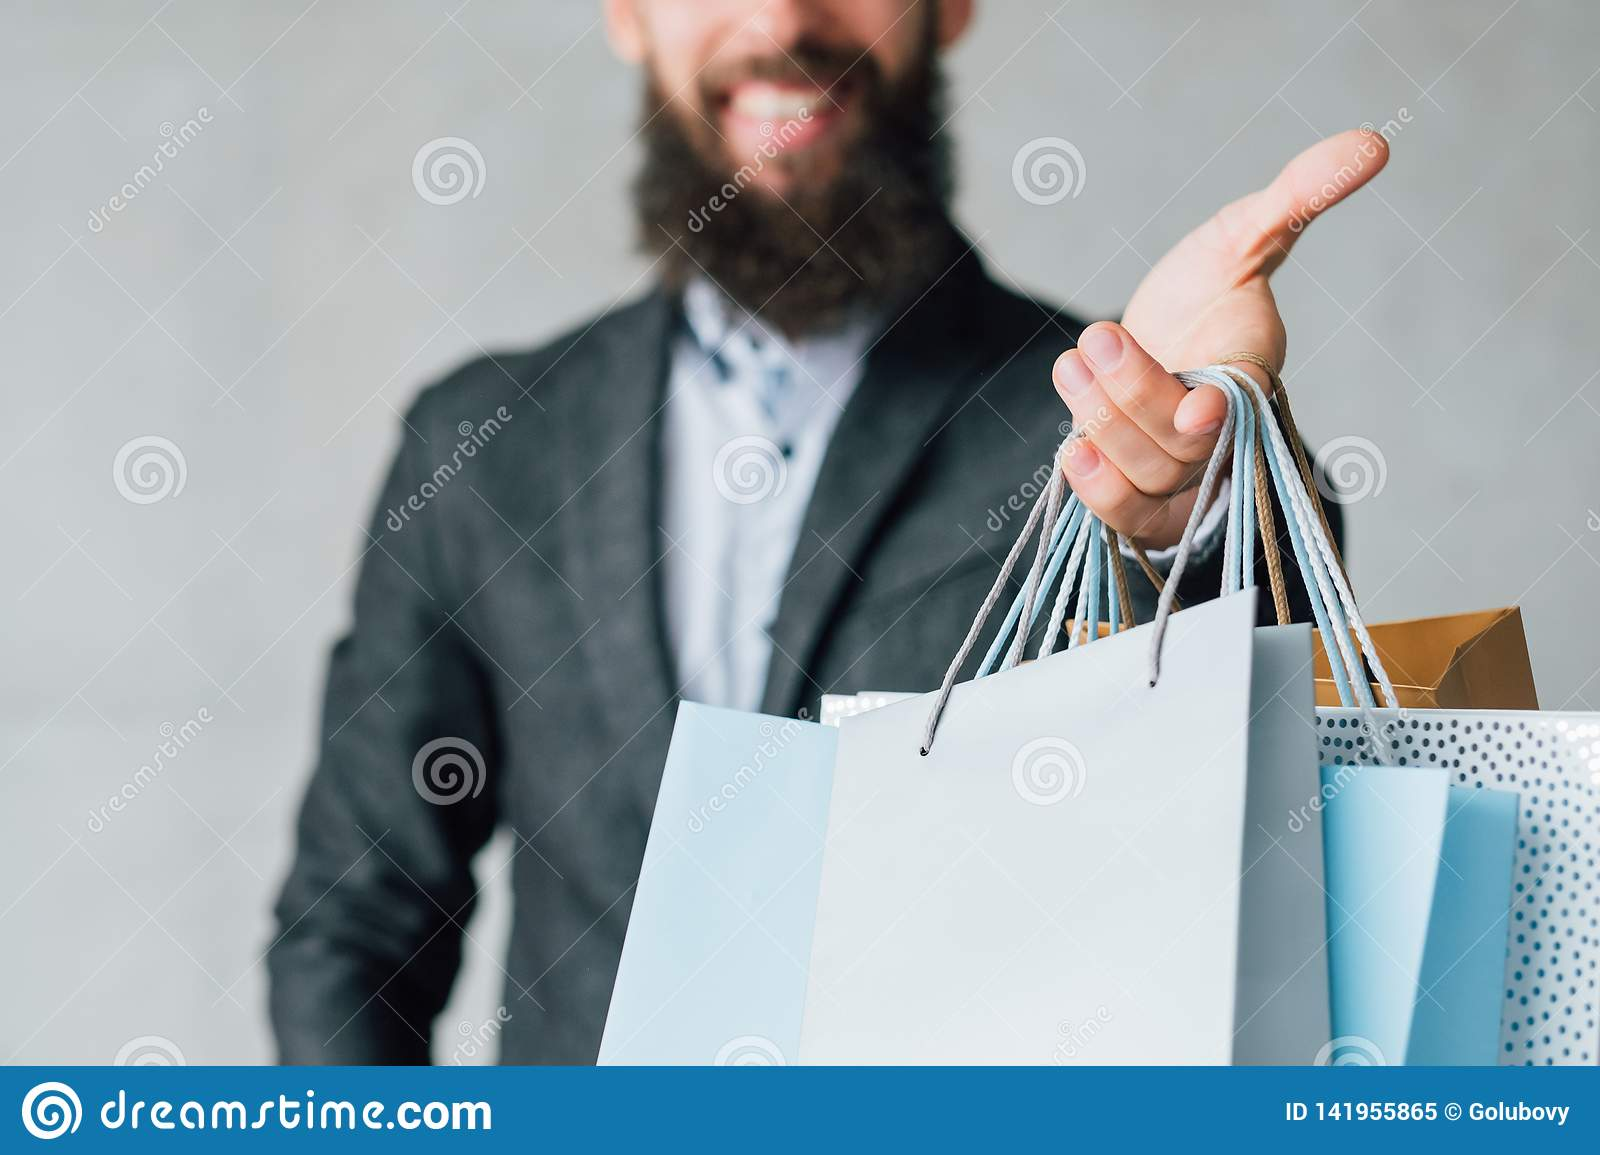 Online shopping urban lifestyle delivery service